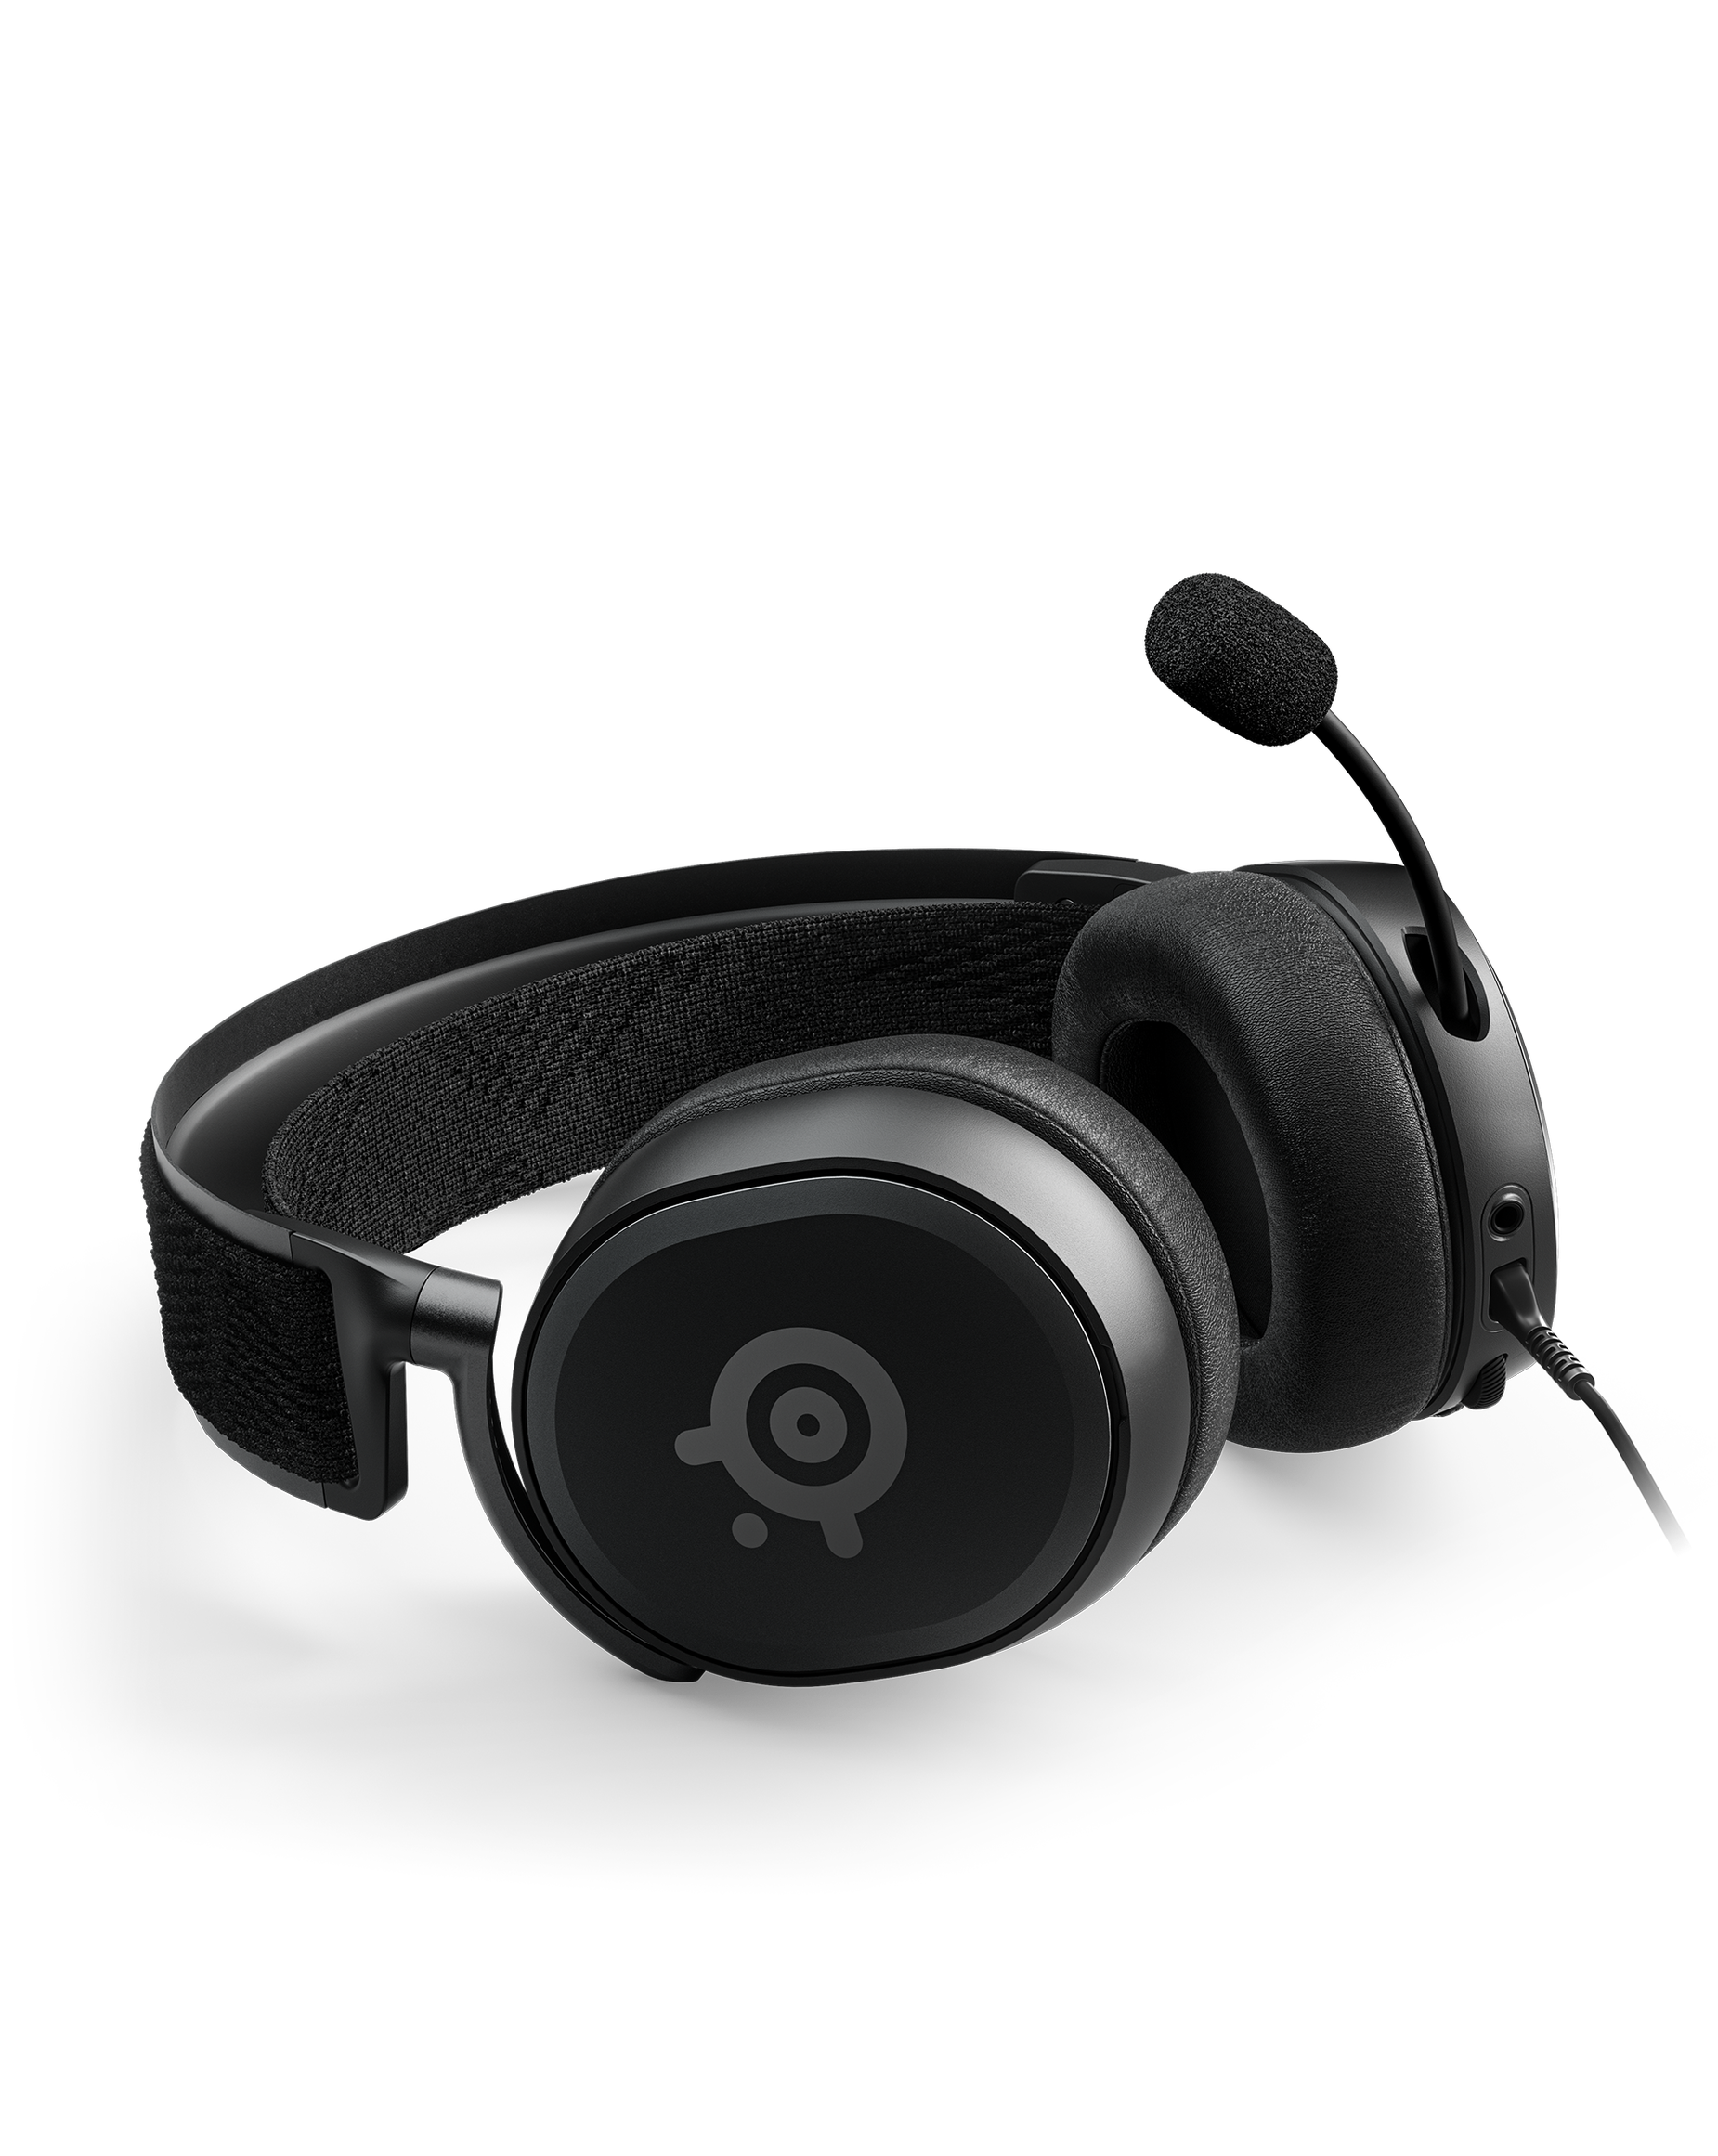 An Arctis Prime lays on its side with the mic fully extended.